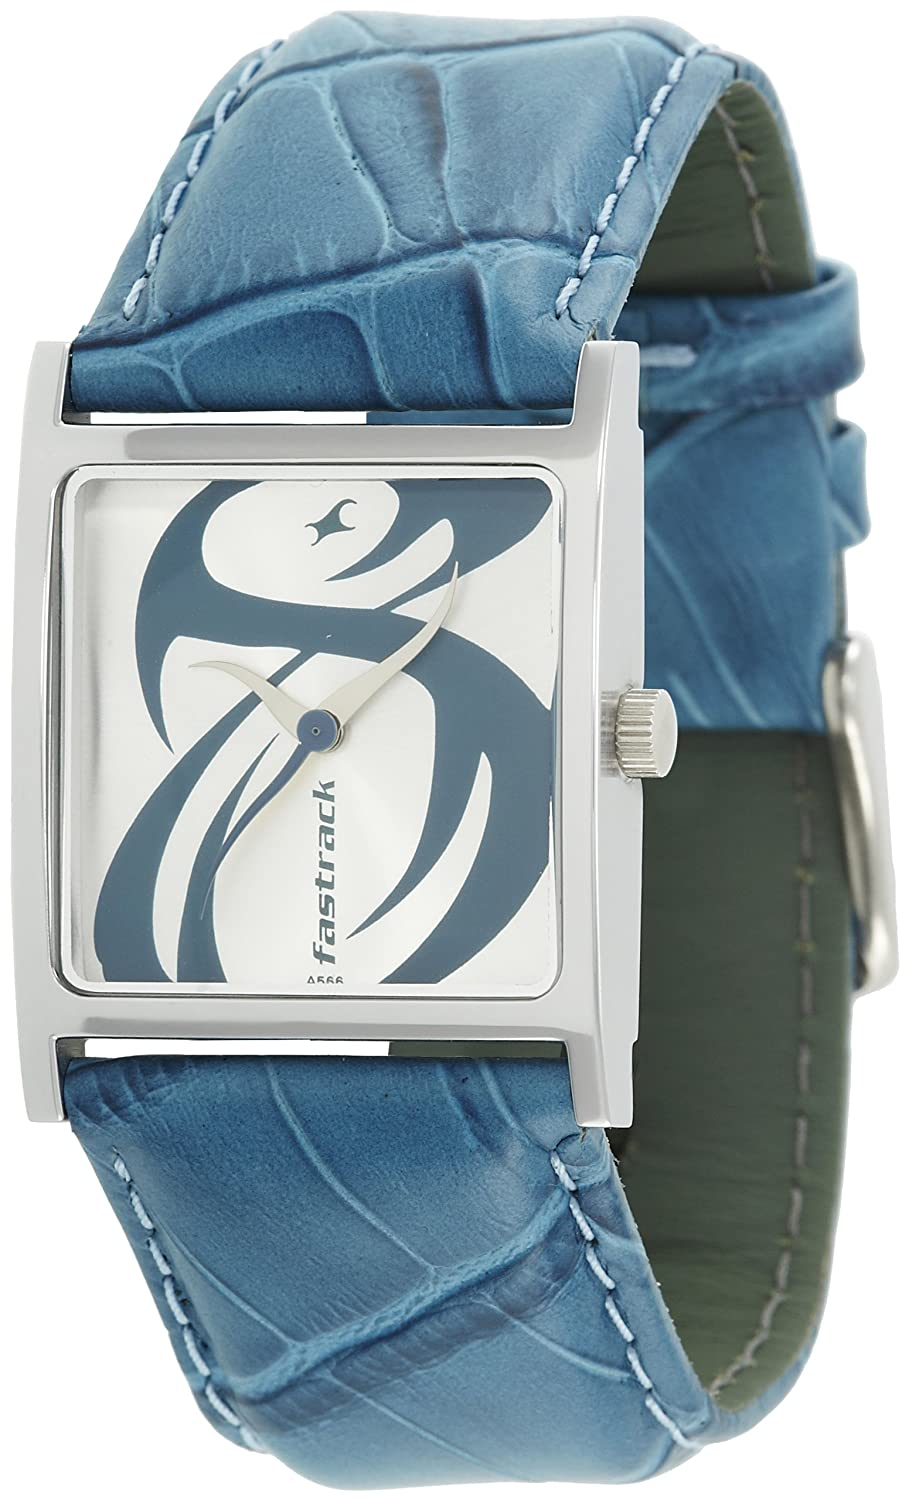 5397aeb62 Fastrack watches discount coupons - Poker coupon olg